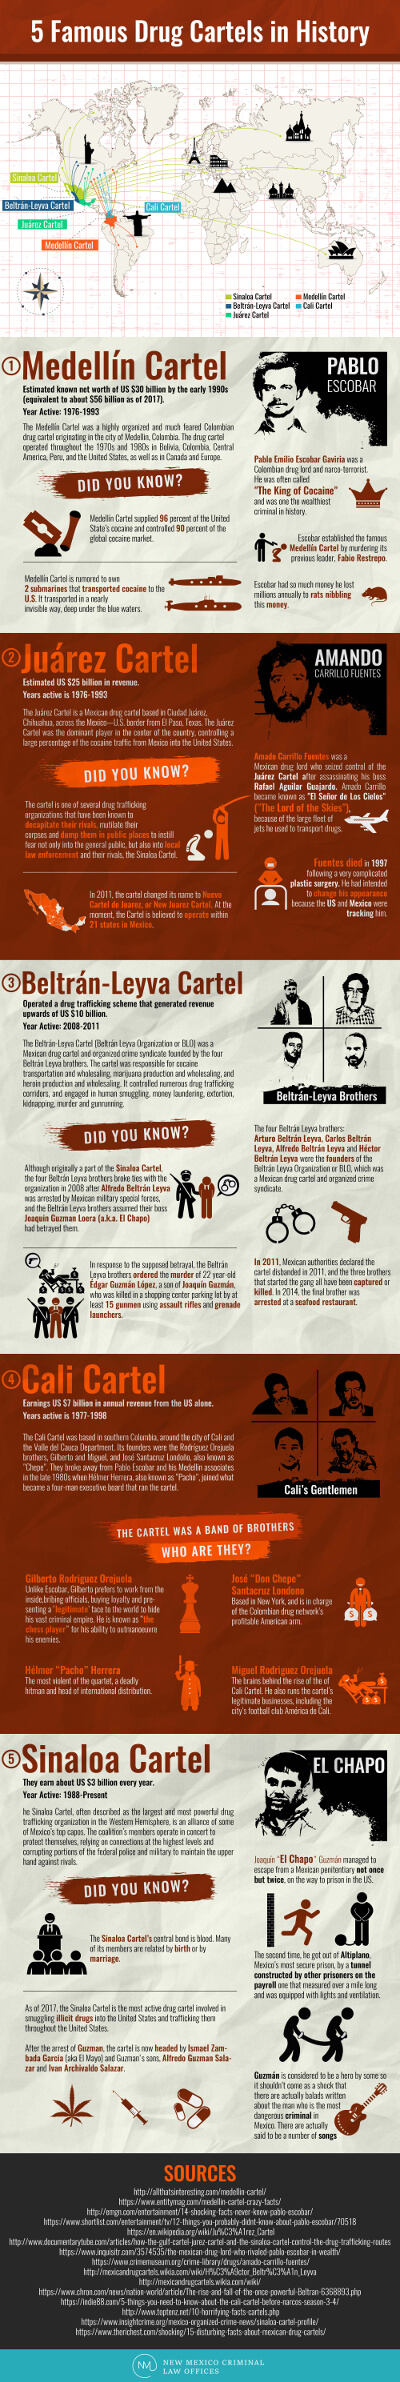 5 Famous Drug Cartels in History